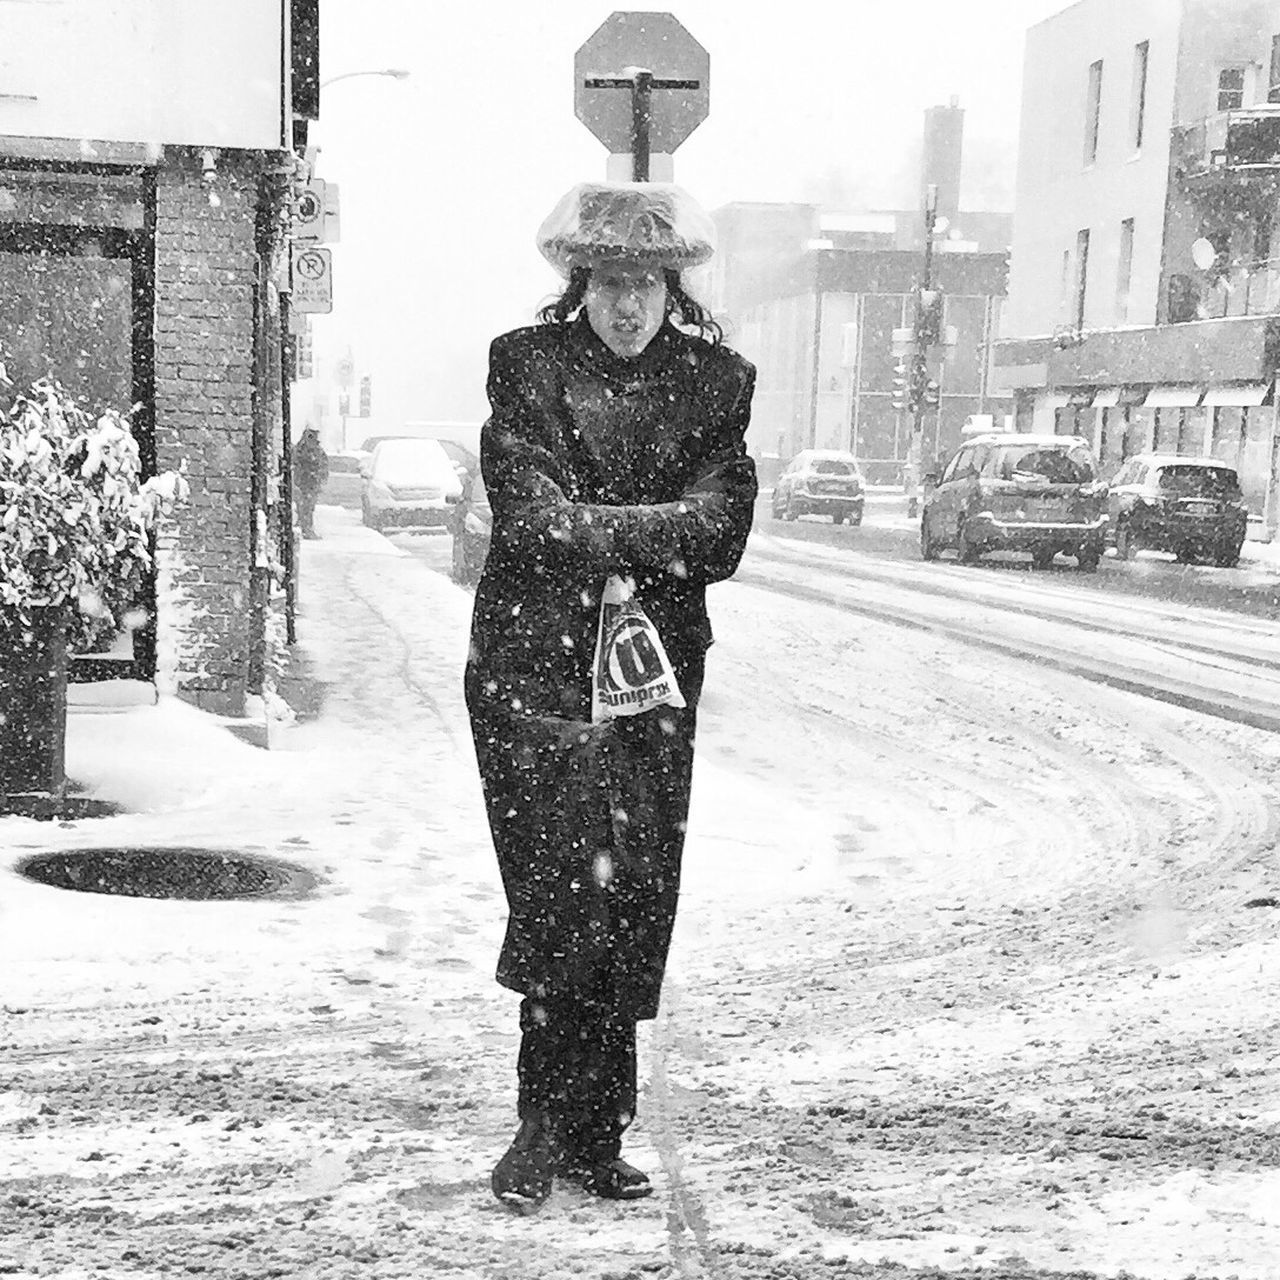 Let it snow ! Real People One Person AMPt Community Winter Snow Streetphotography Blackandwhite Streetphoto_bw EyeEm Best Shots - Black + White Snow ❄ Montréal